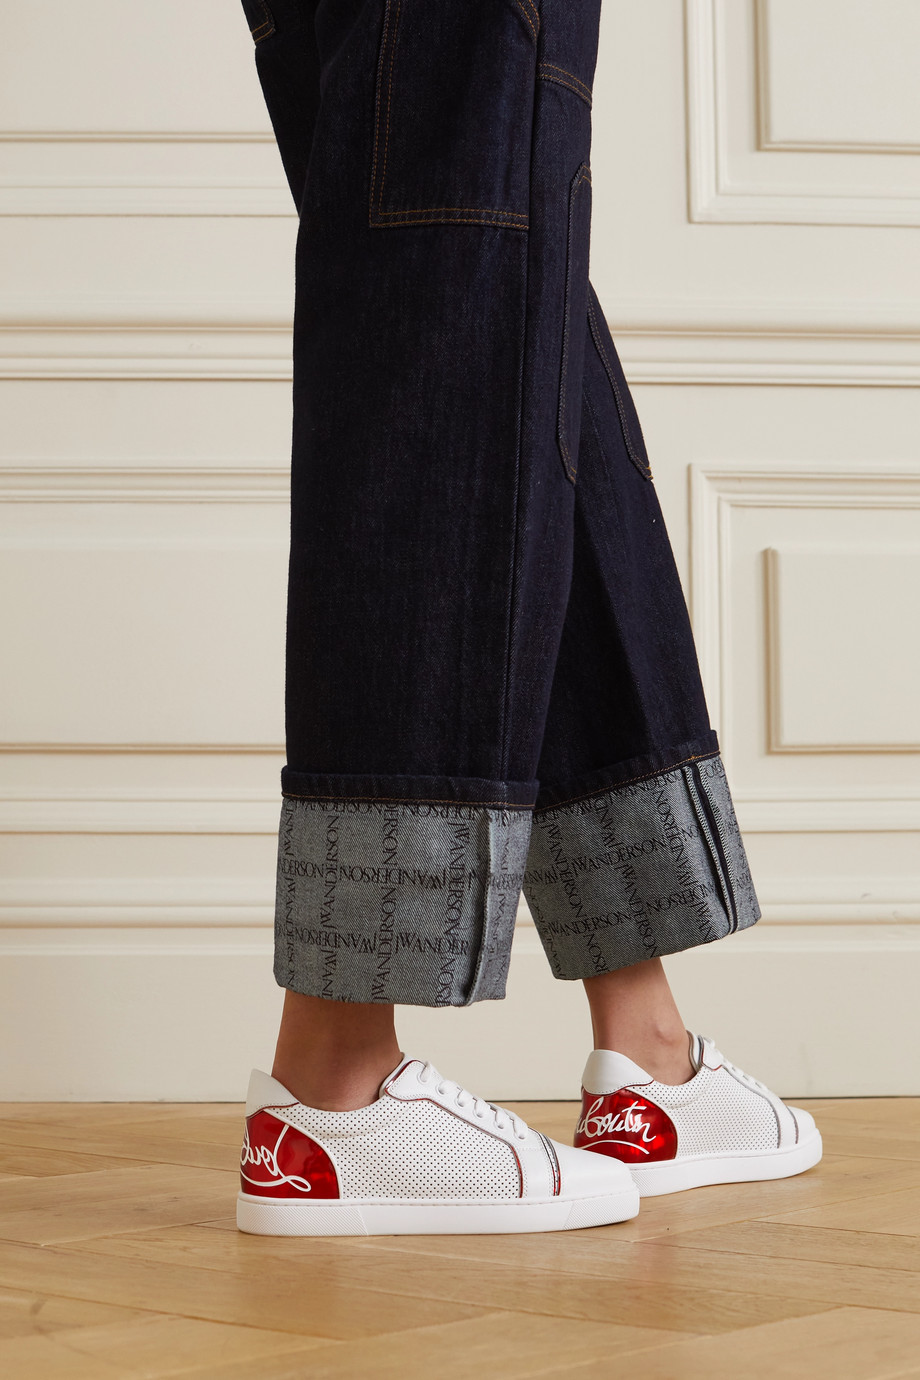 Christian Louboutin Fun Vieira printed PVC-trimmed perforated leather sneakers